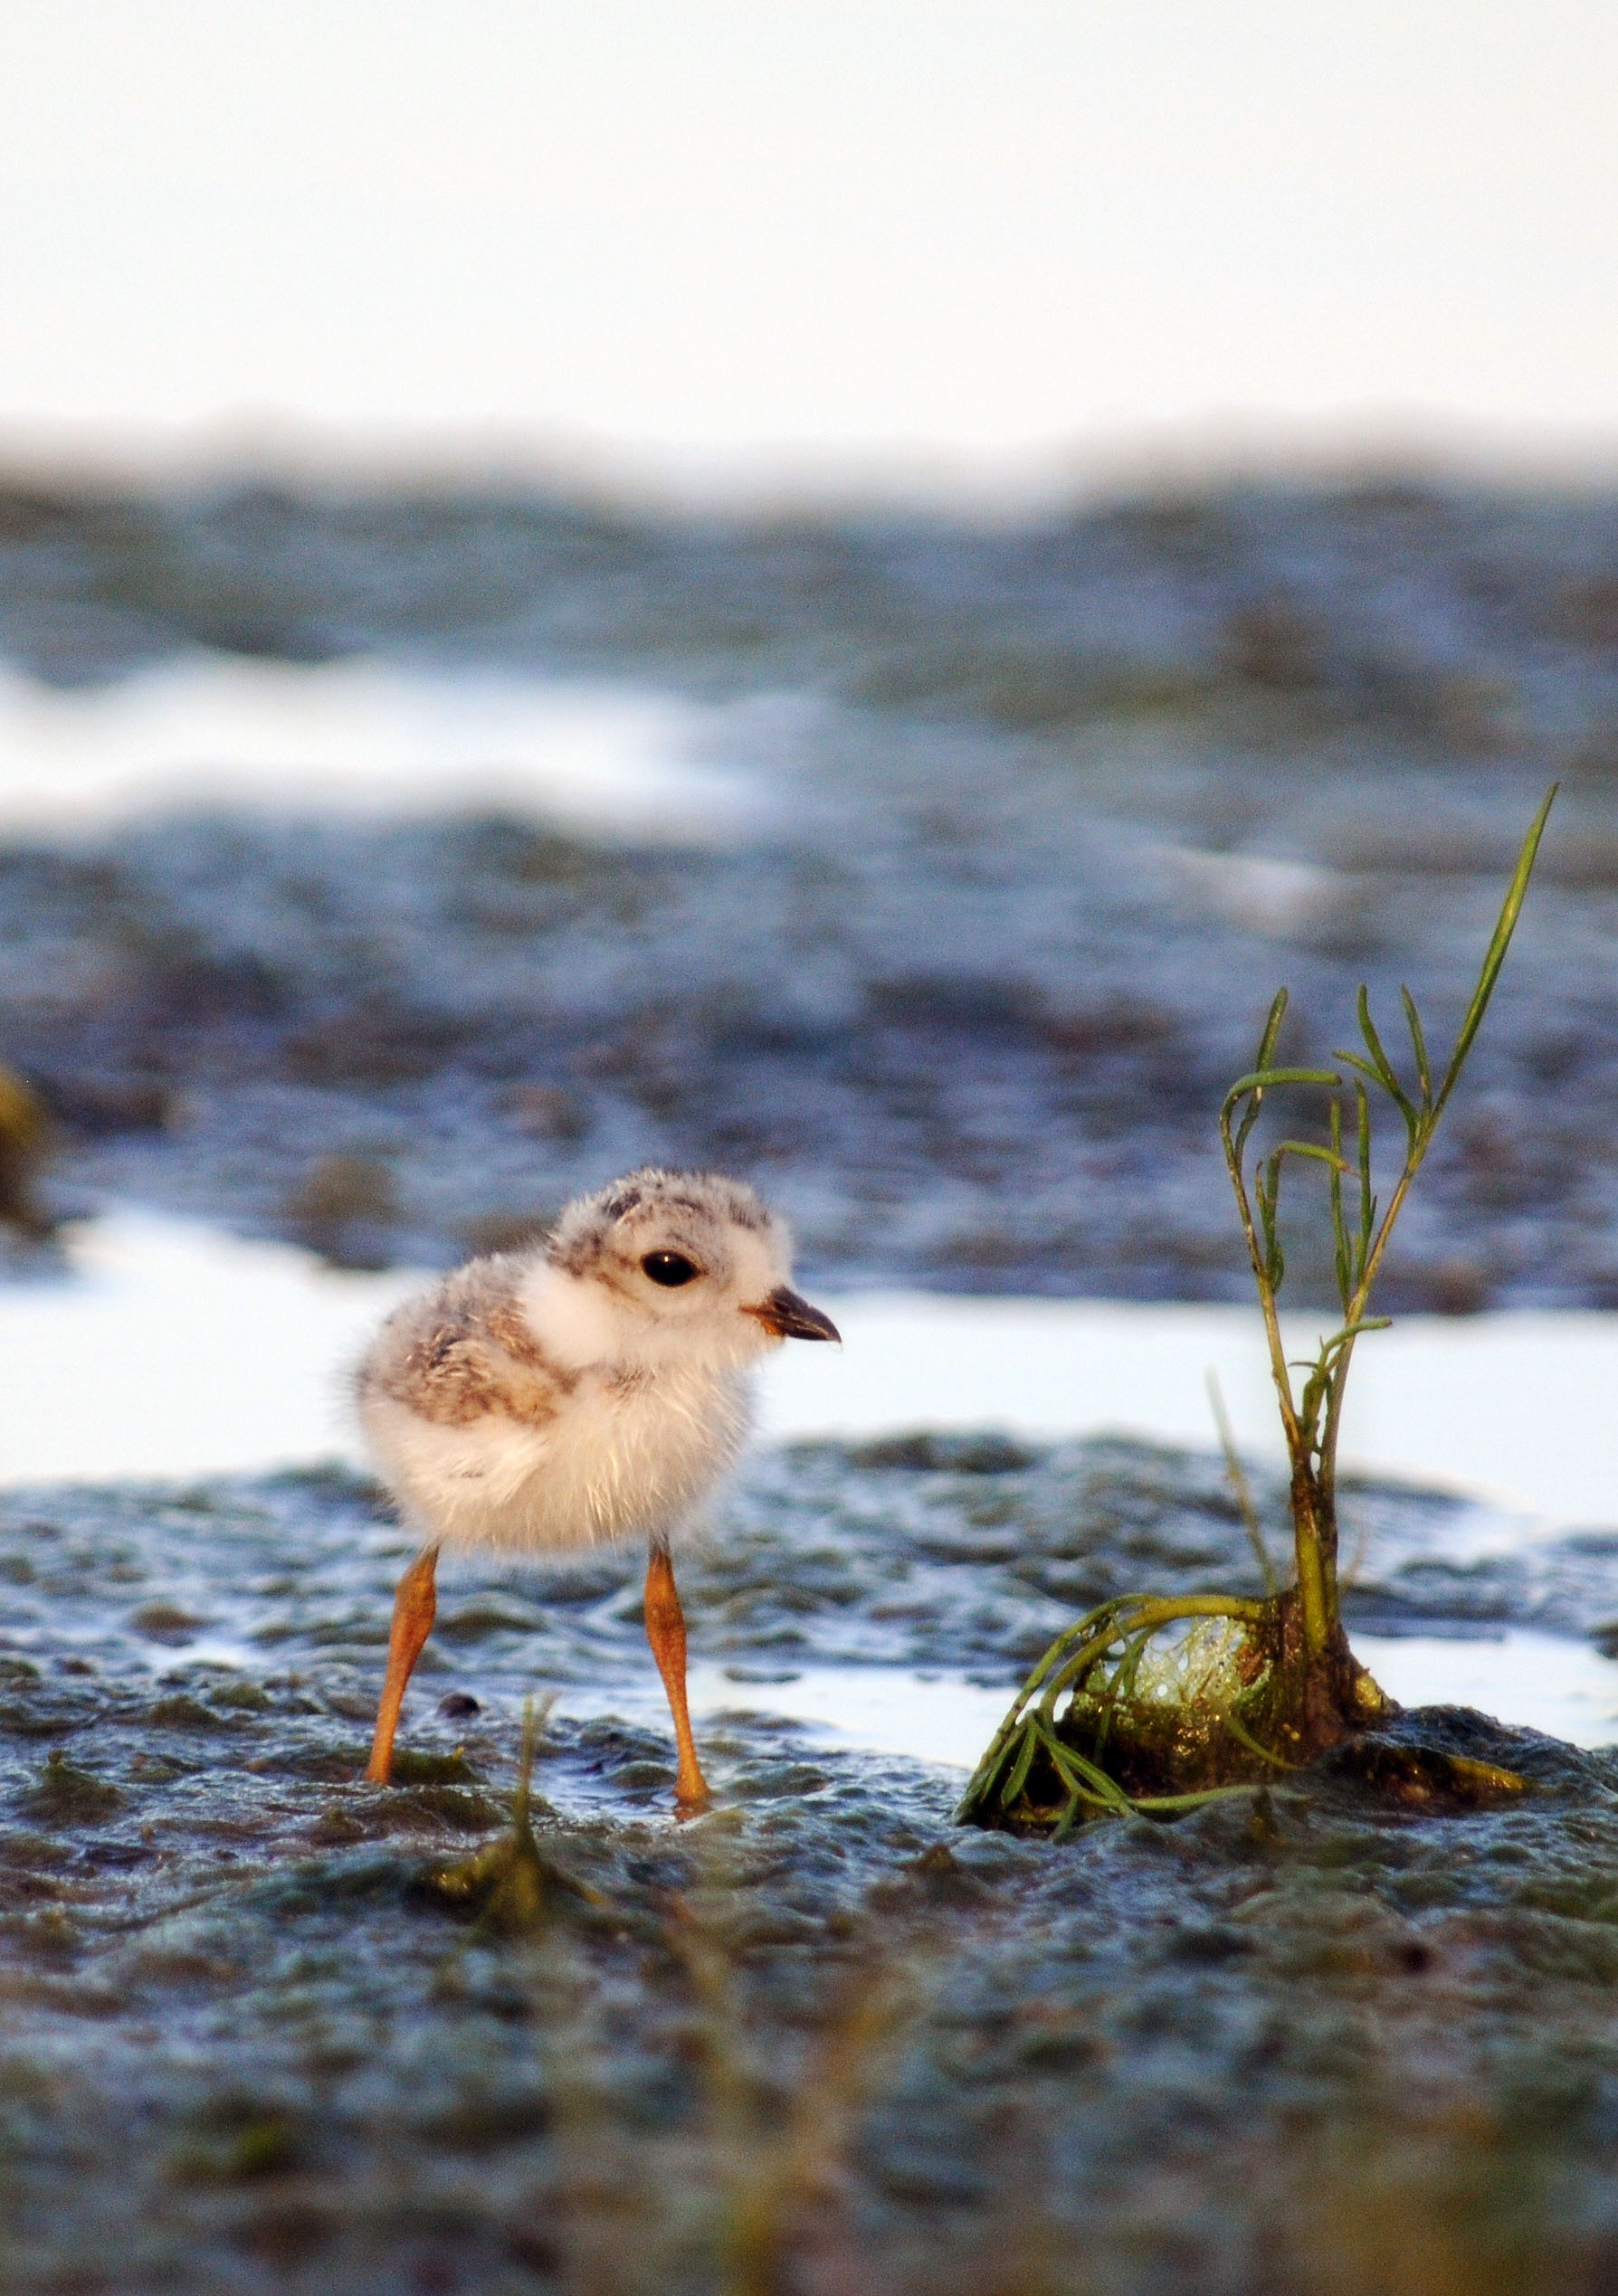 Plover study. Photo by Allison Johnson